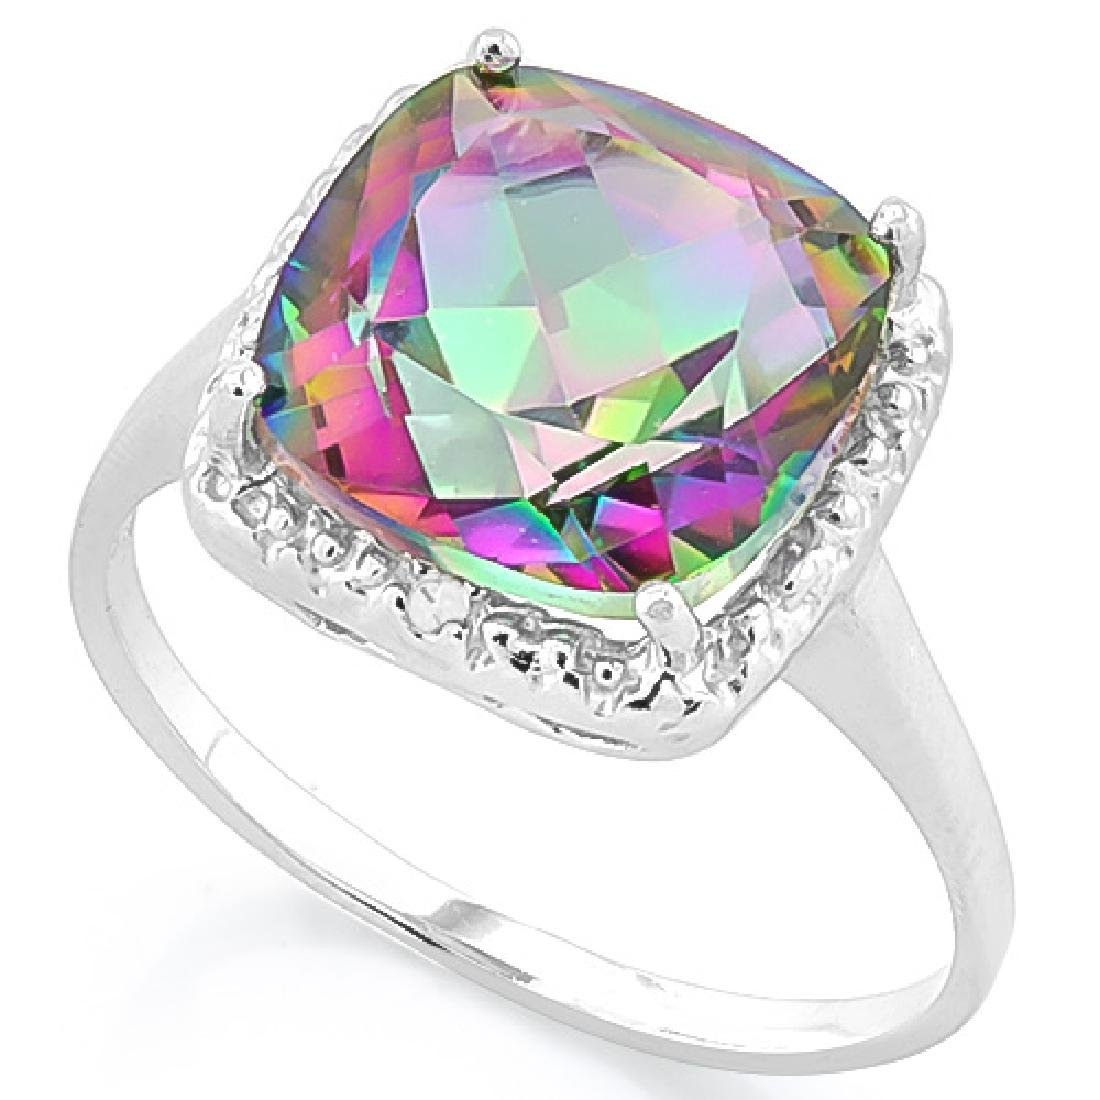 GLISTENING 4CT MYSTIC TOPAZ/DIAMOND ESTATE RING